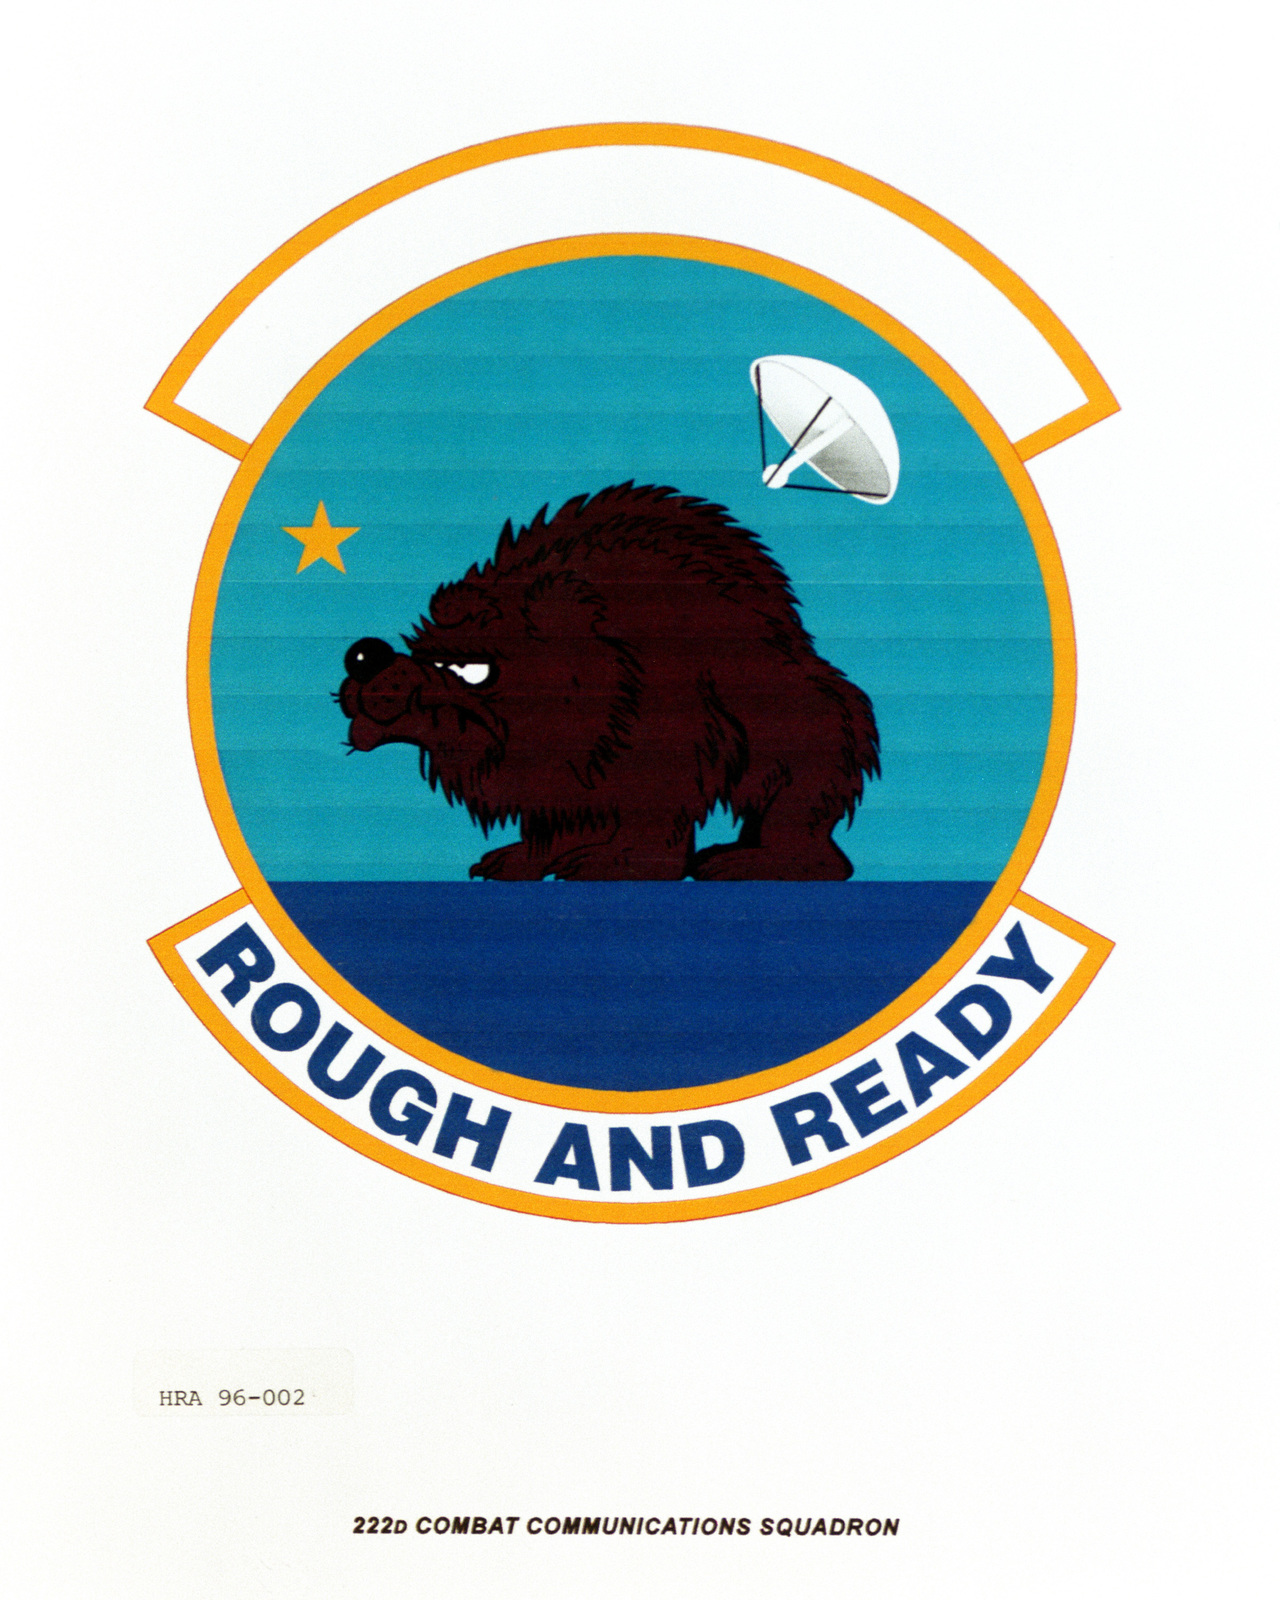 Approved Insignia for the 222nd Combat Communications Squadron Exact Date Shot Unknown